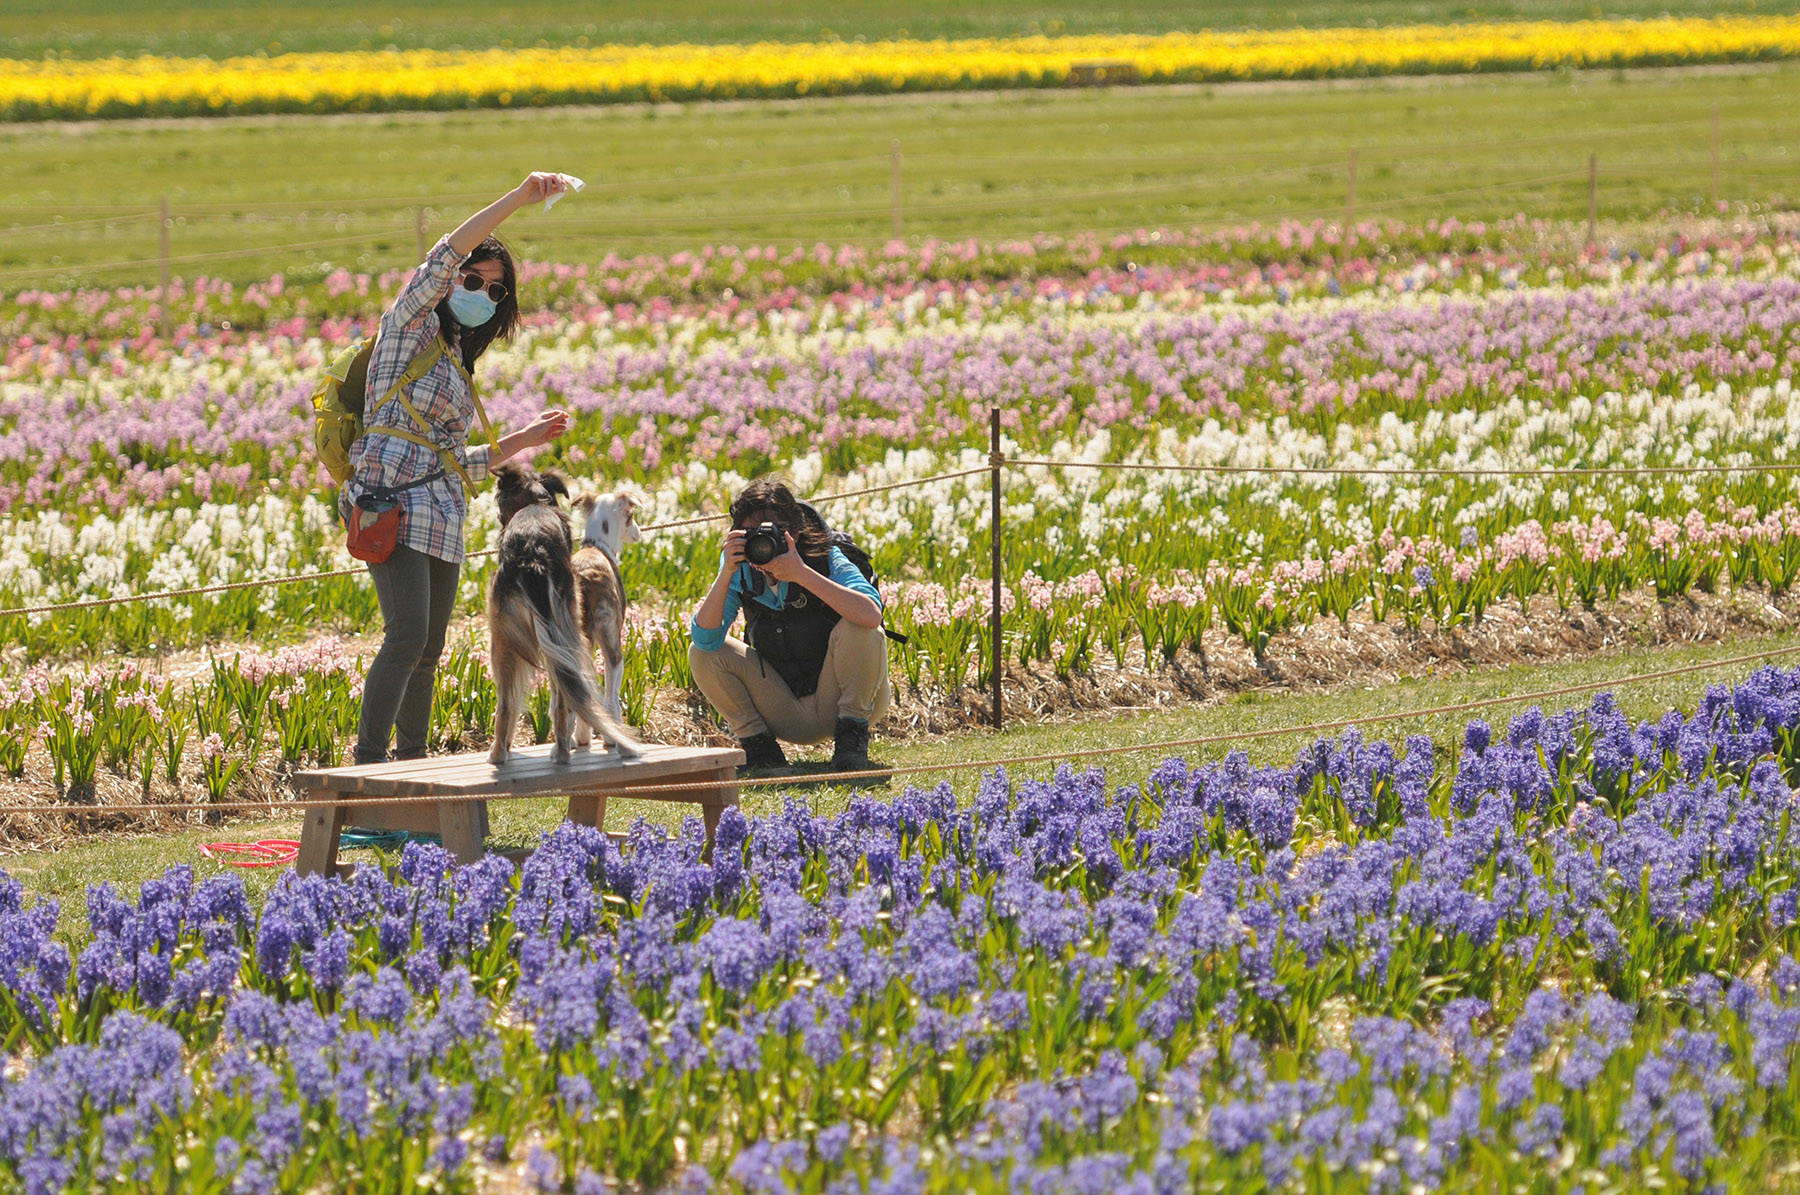 Kelly Ng (left) tries to get the attention of Podzol and Aquila as twin sister, Pauline Ng, snaps a photo of the two dogs by a field of hyacinths at the Chilliwack Tulips attraction on April 13. (Jenna Hauck/ Chilliwack Progress)